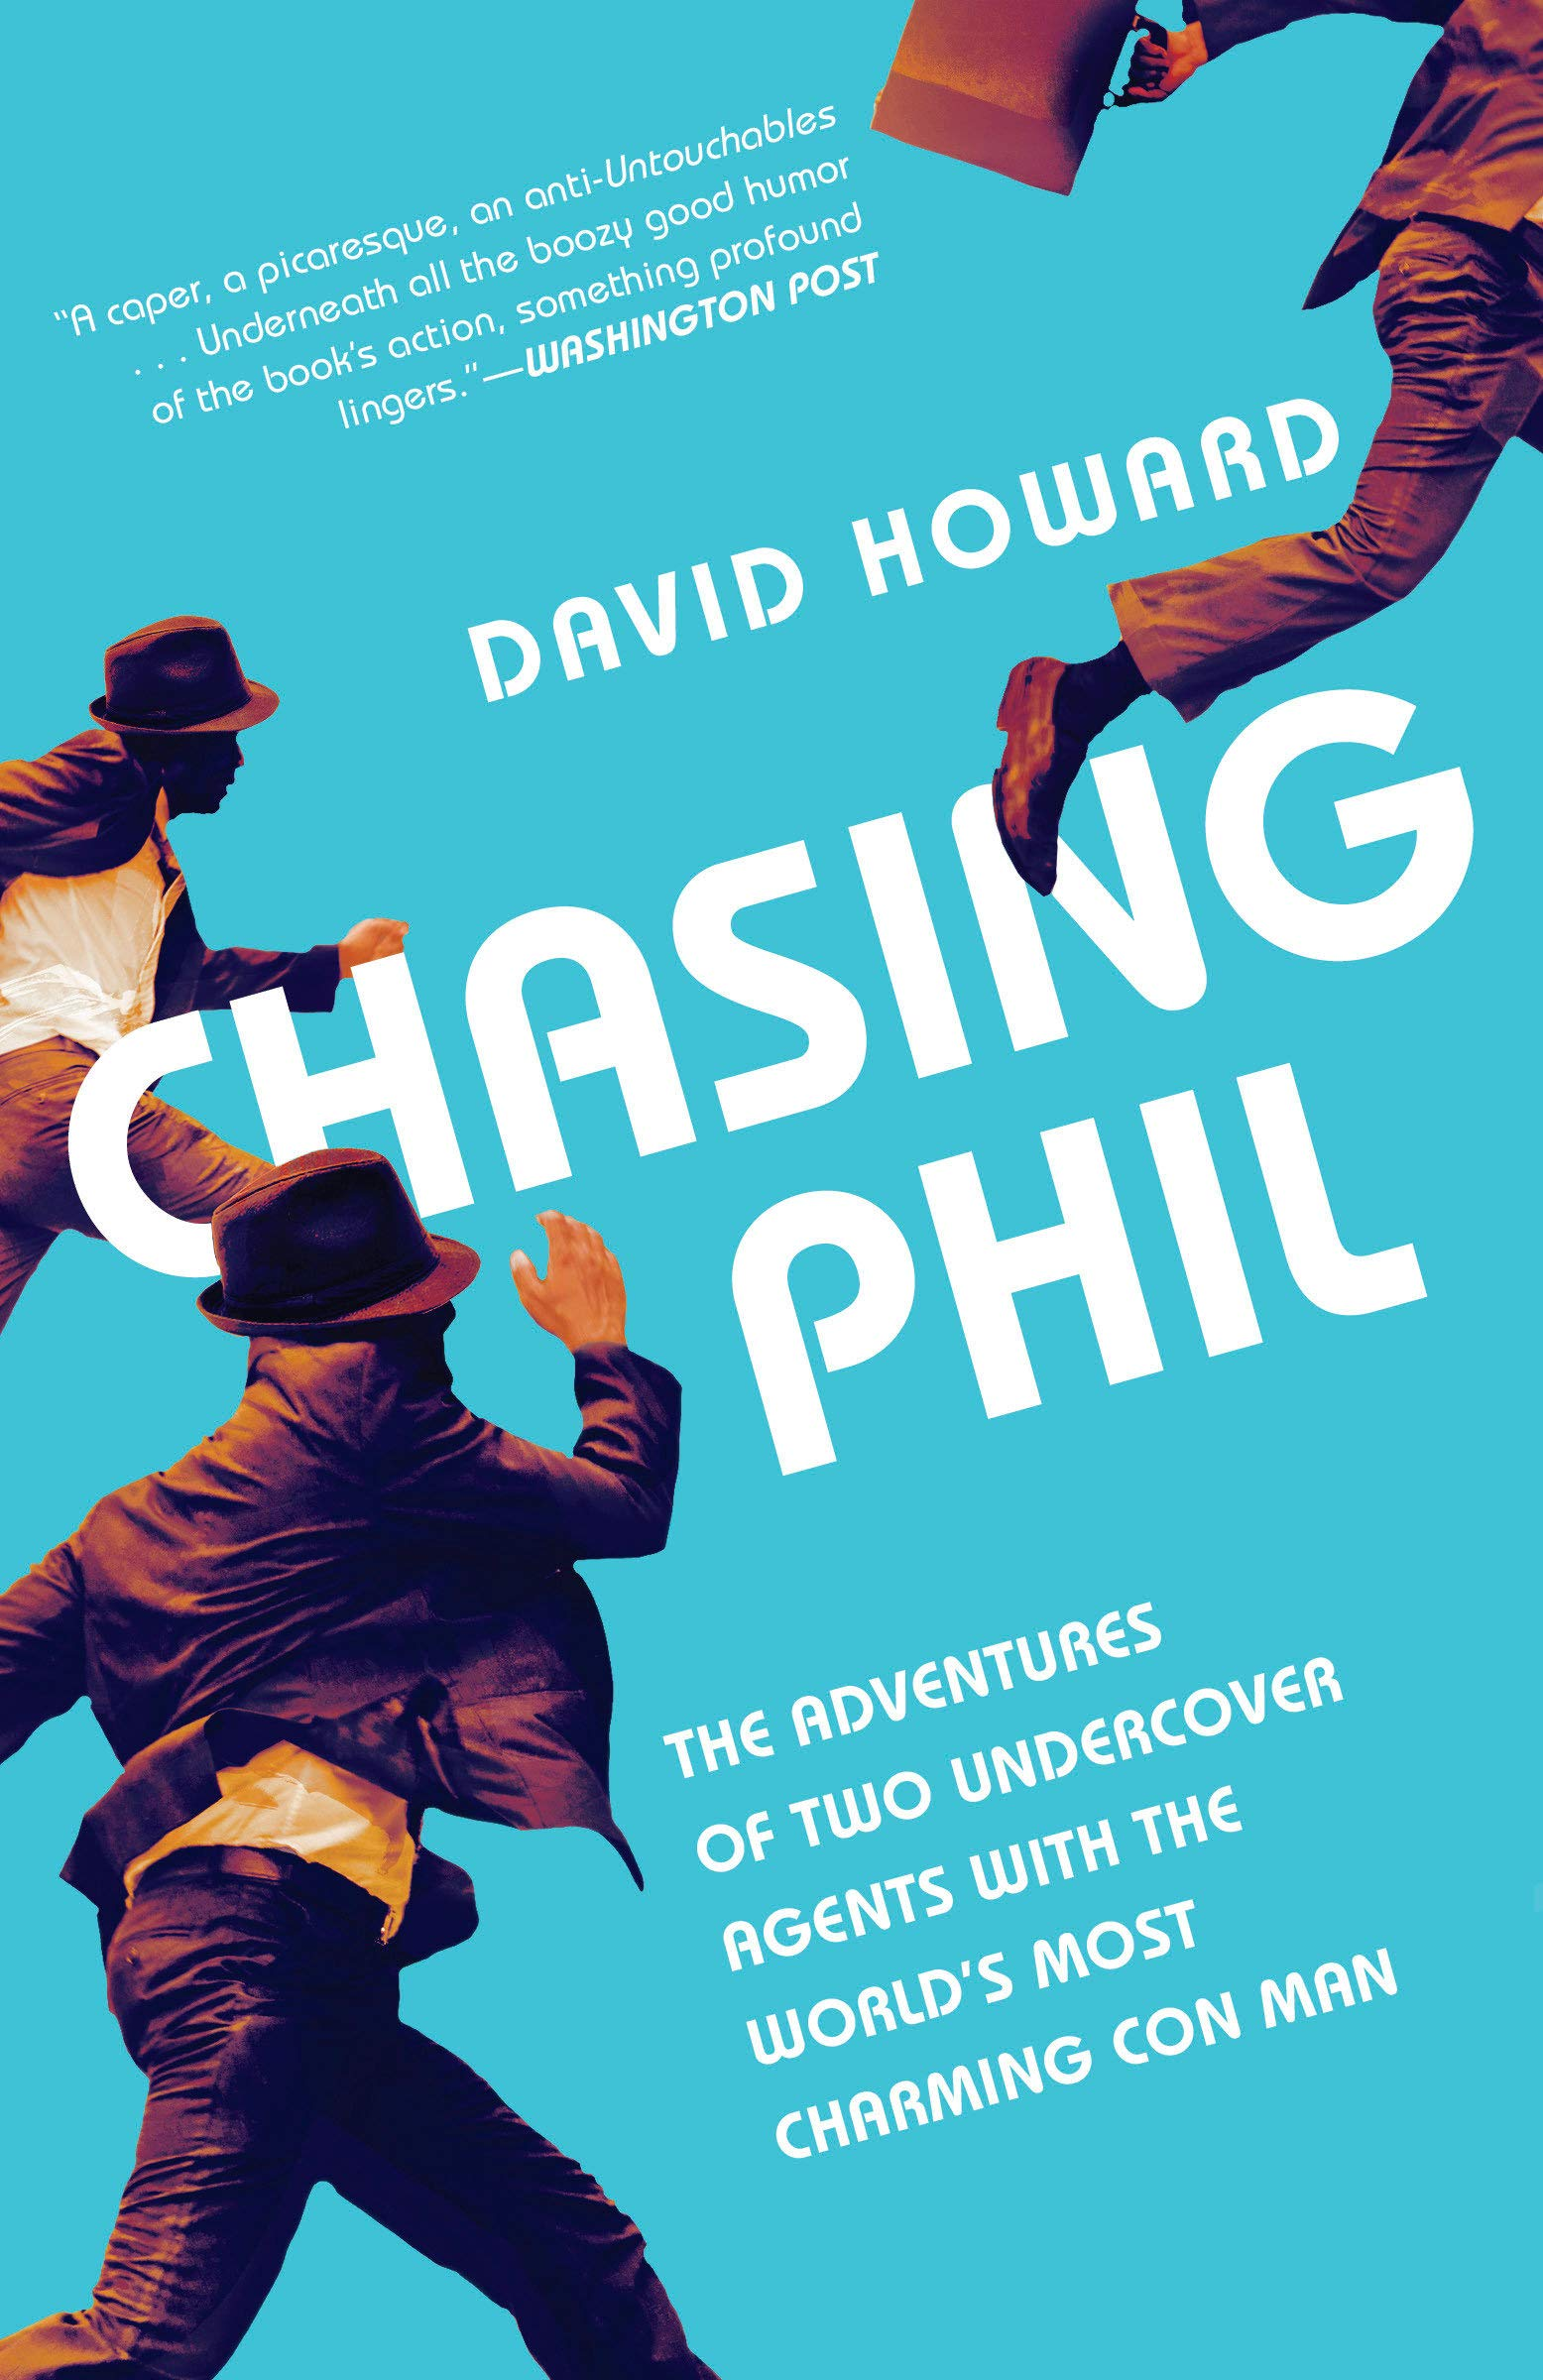 Chasing Phil: The Adventures of Two Undercover Agents with the World's Most Charming Con Man PDF